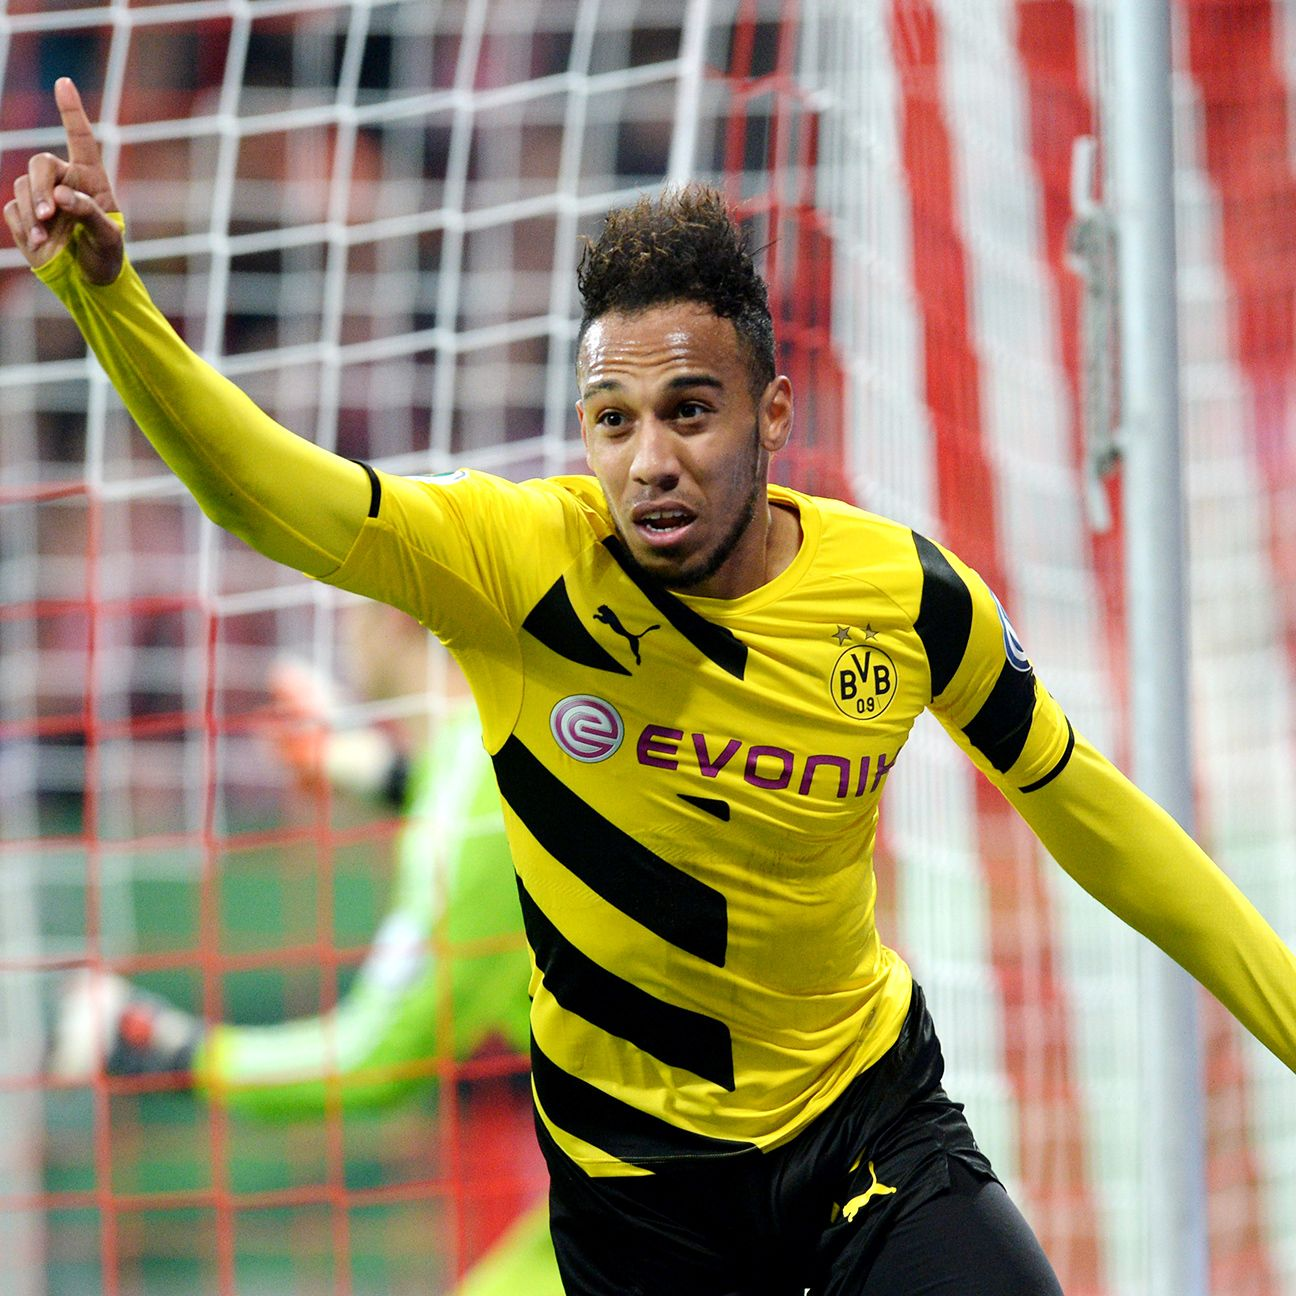 Pierre-Emerick Aubemeyang's equaliser silenced the Allianz Arena and breathed new life into Dortmund.